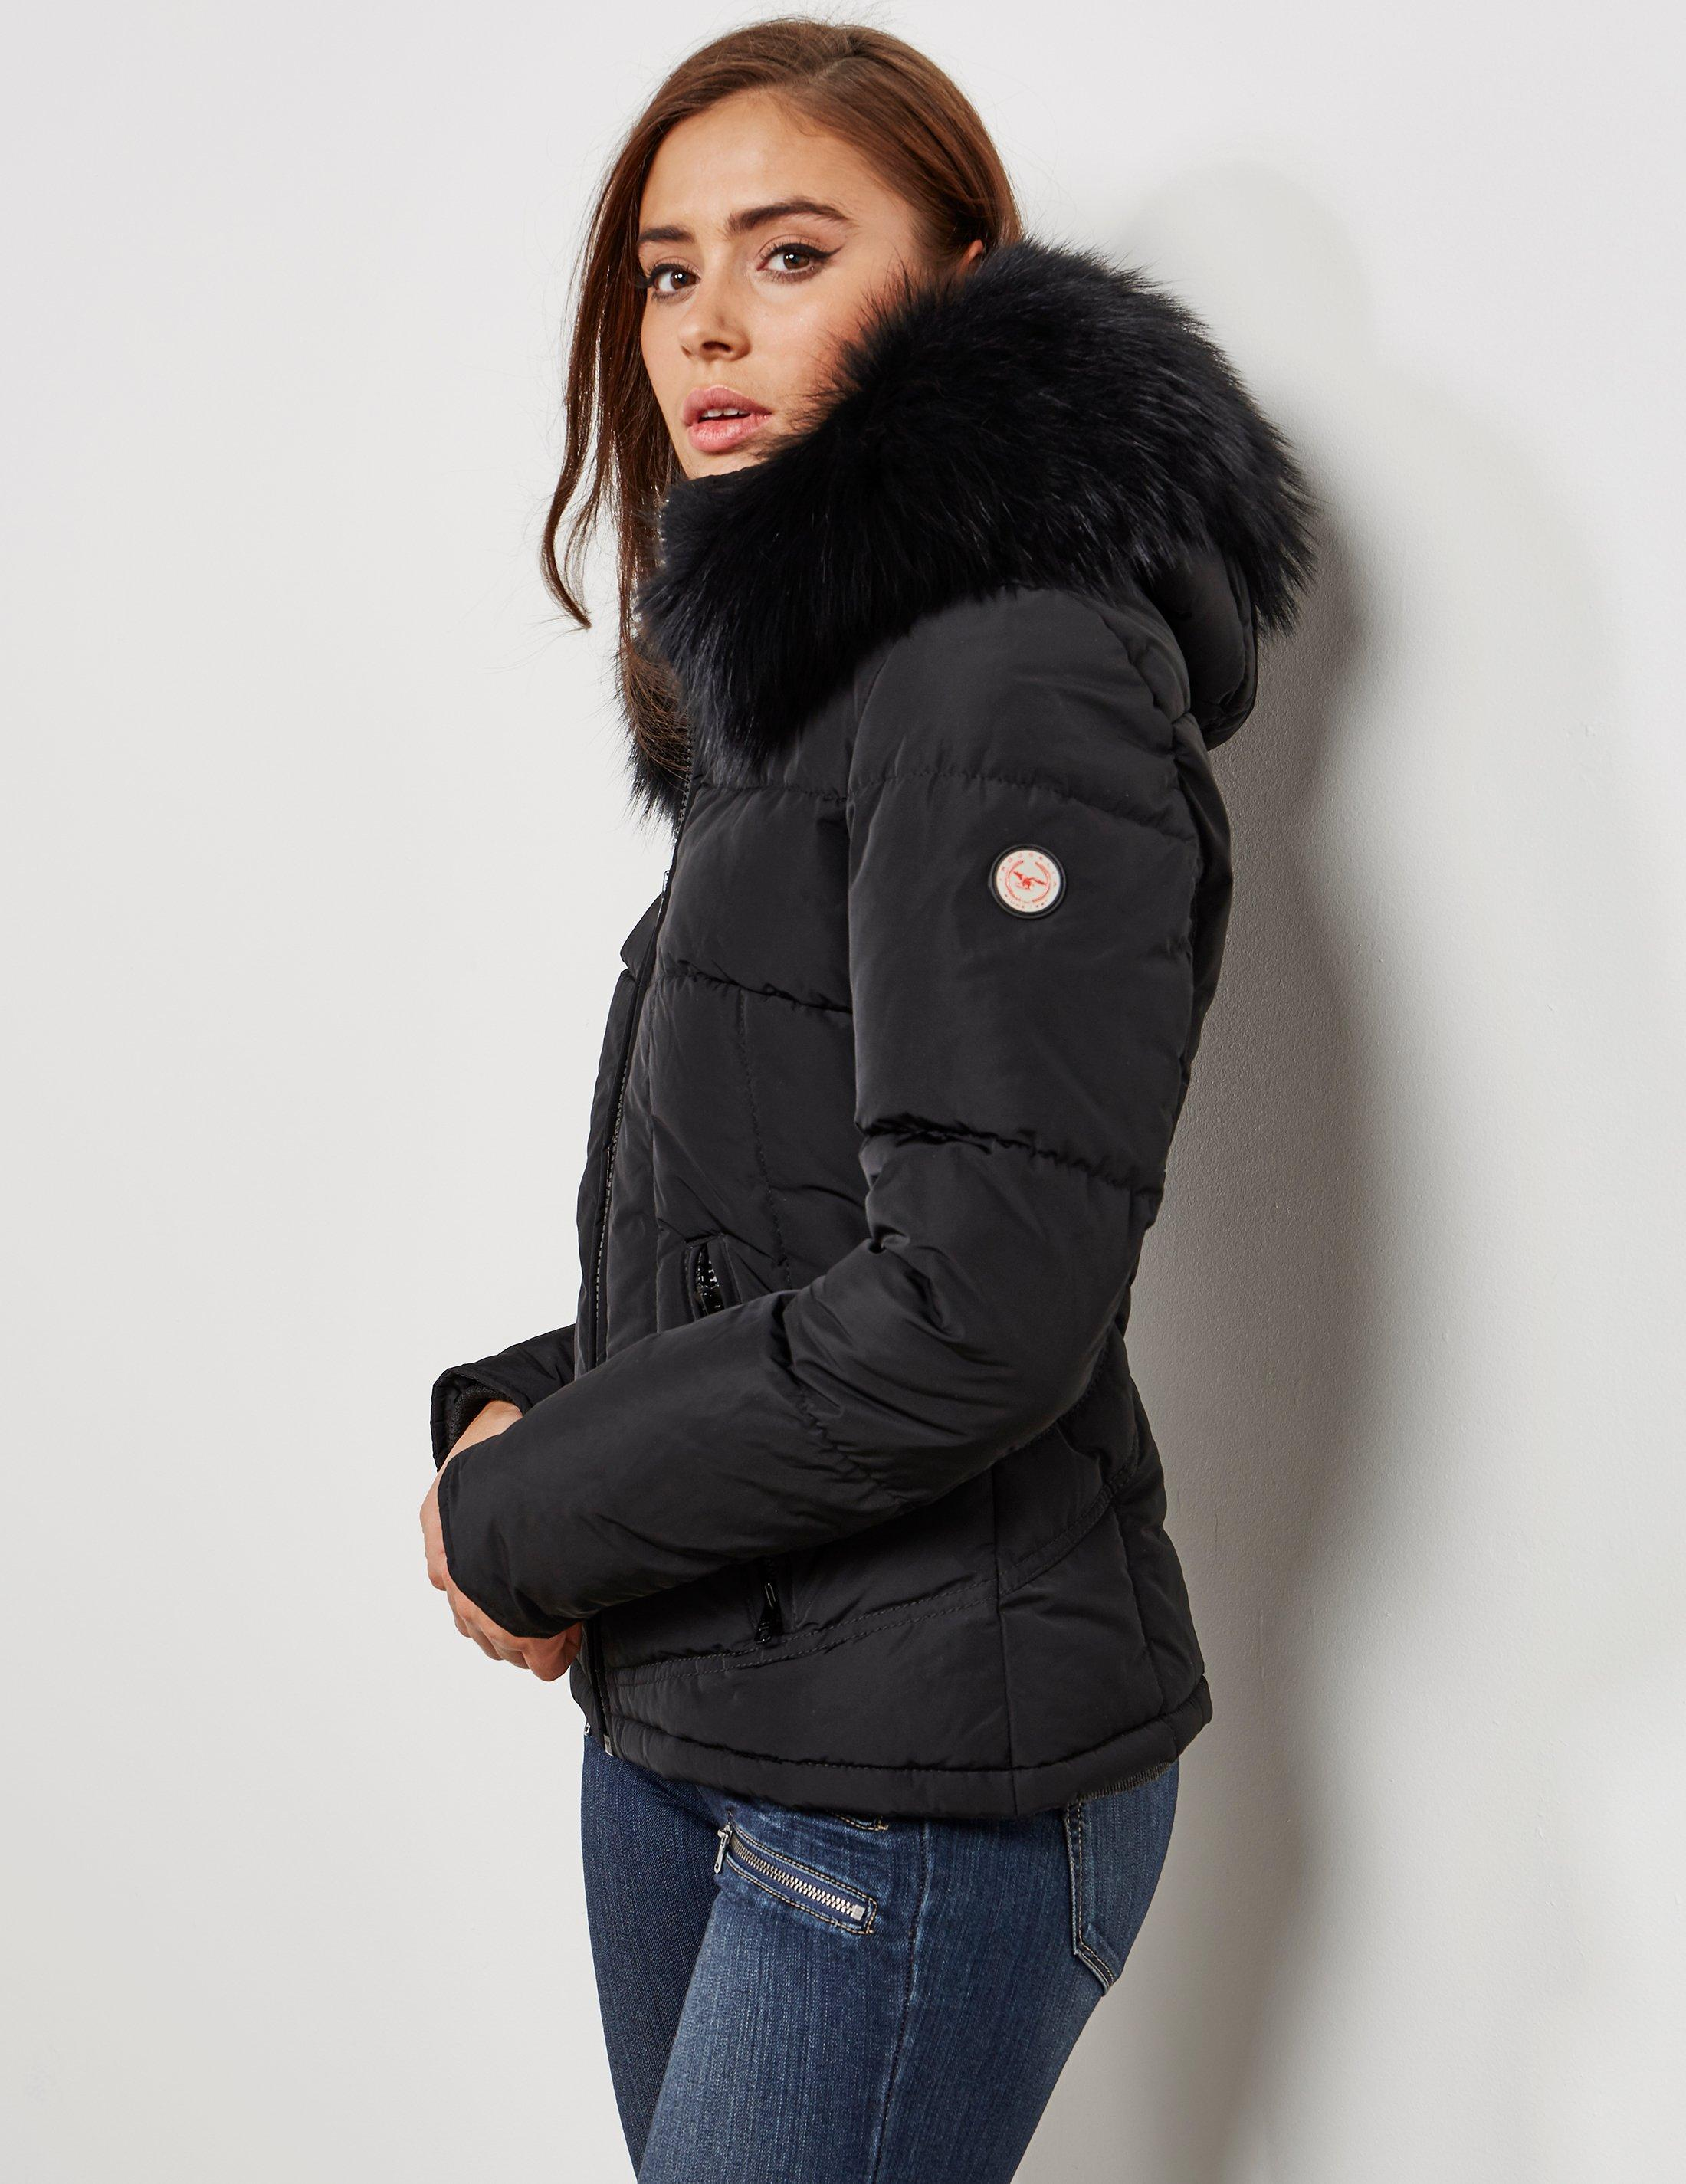 Froccella Womens Padded Jacket Black In Black Lyst